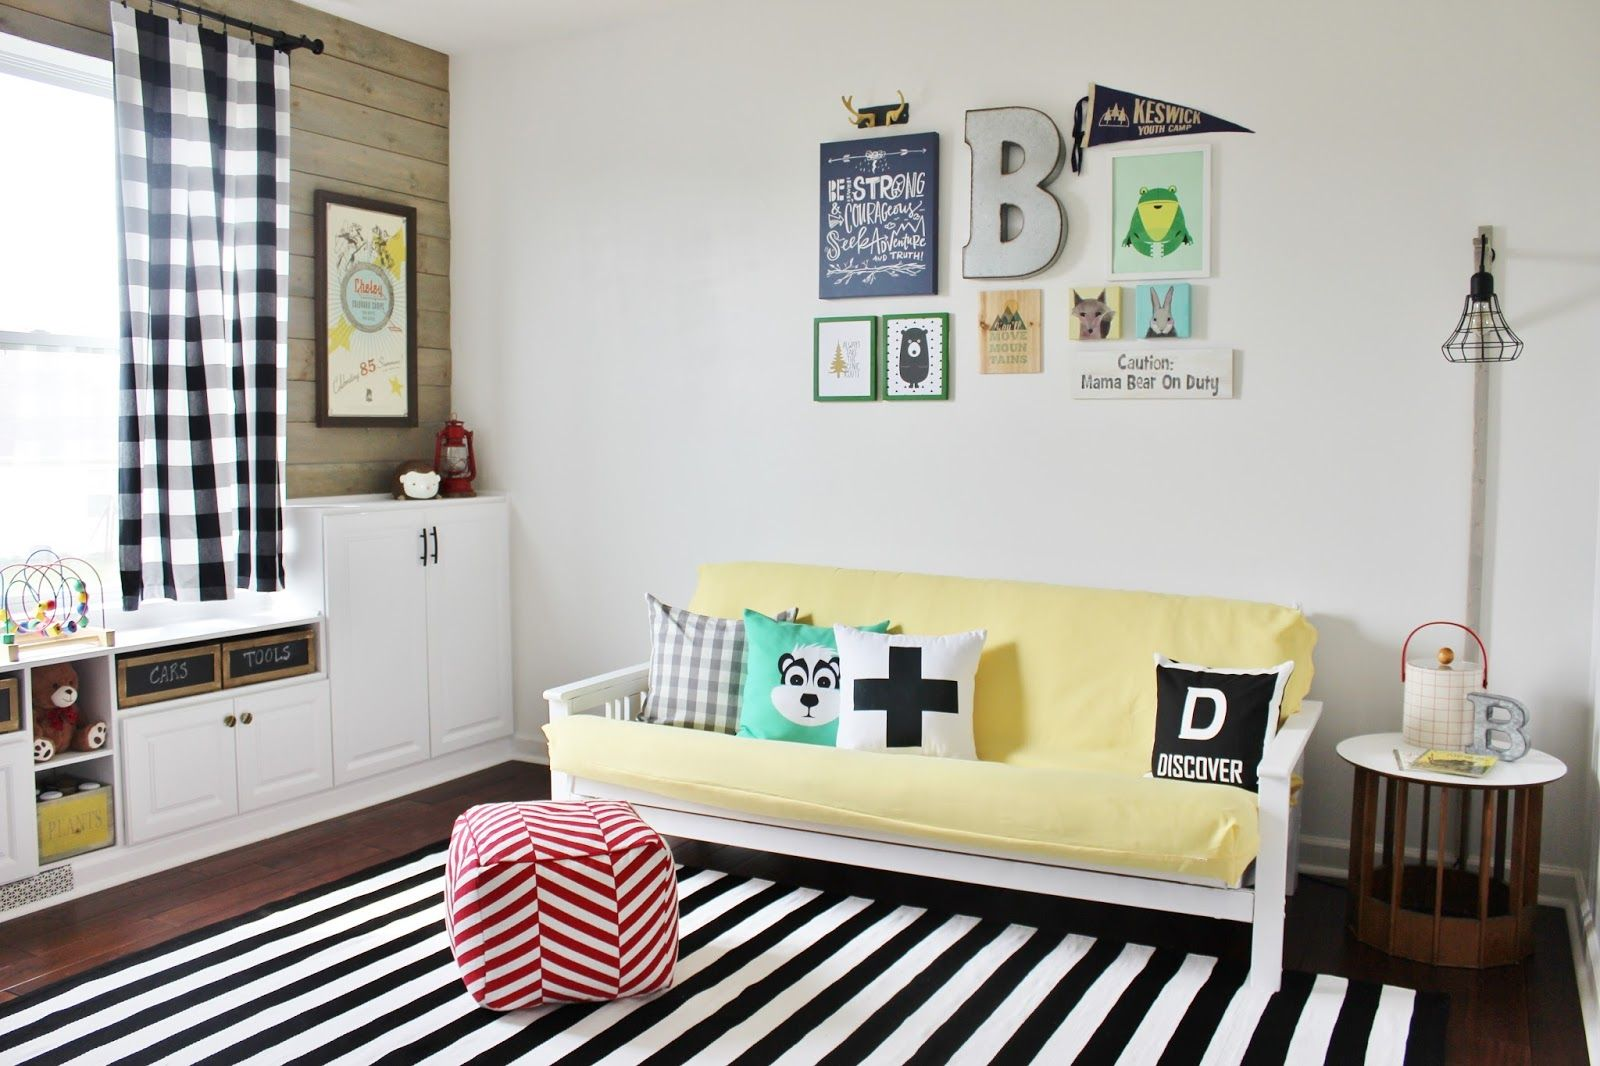 Phenomenal 12 Best Kids Room Ideas Diy Boys And Girls Bedroom Download Free Architecture Designs Scobabritishbridgeorg